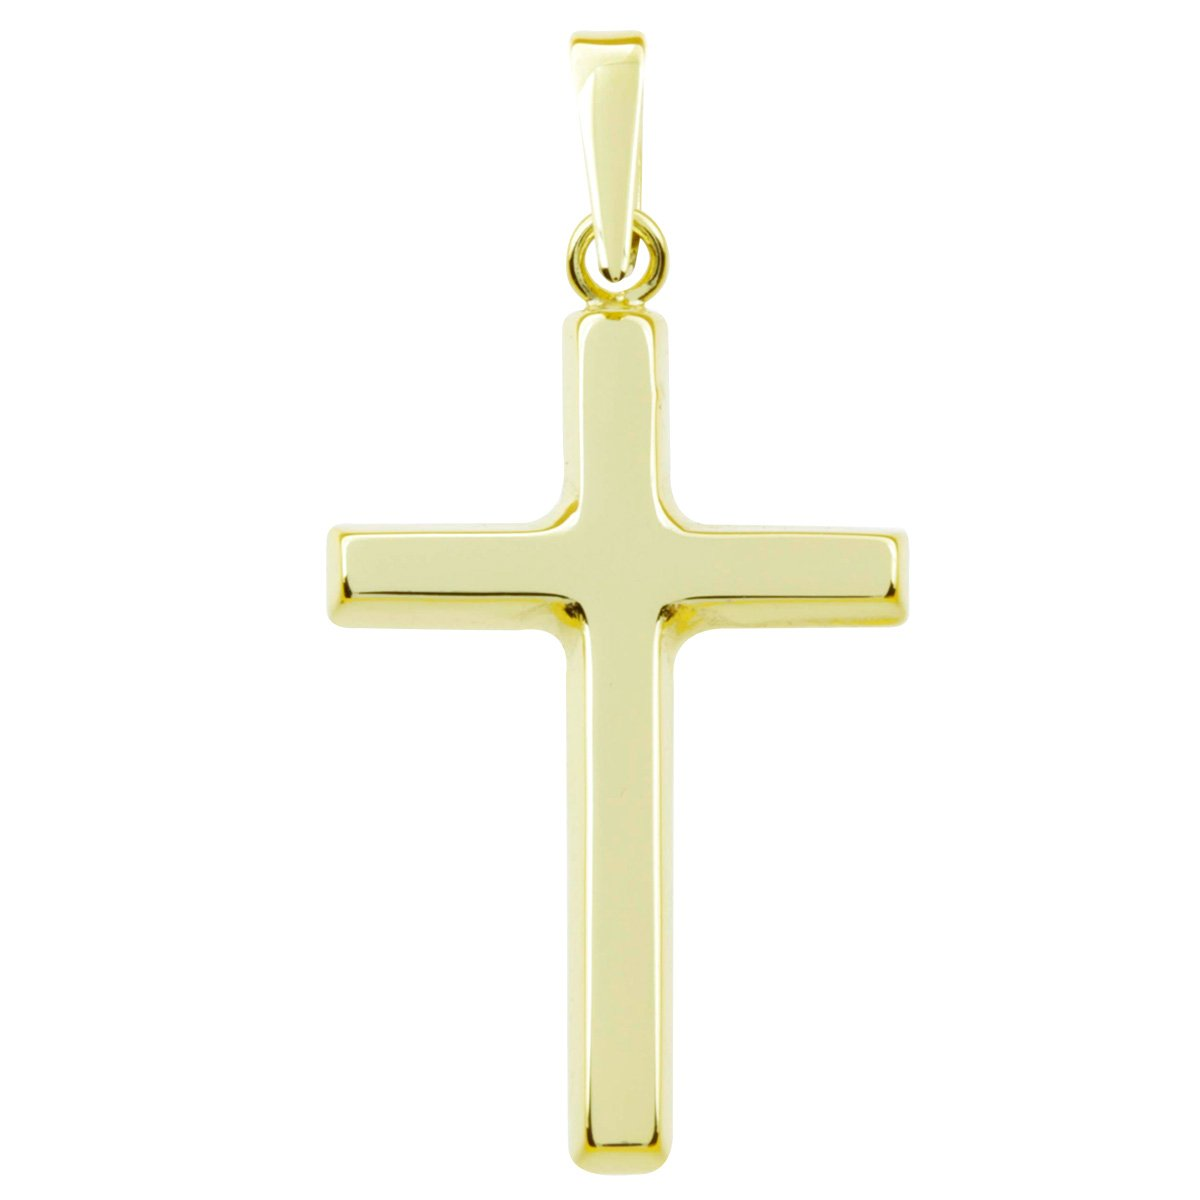 InCollections - 0010100001401 - Pendentif Femme - Or Jaune 8 Cts 333/1000